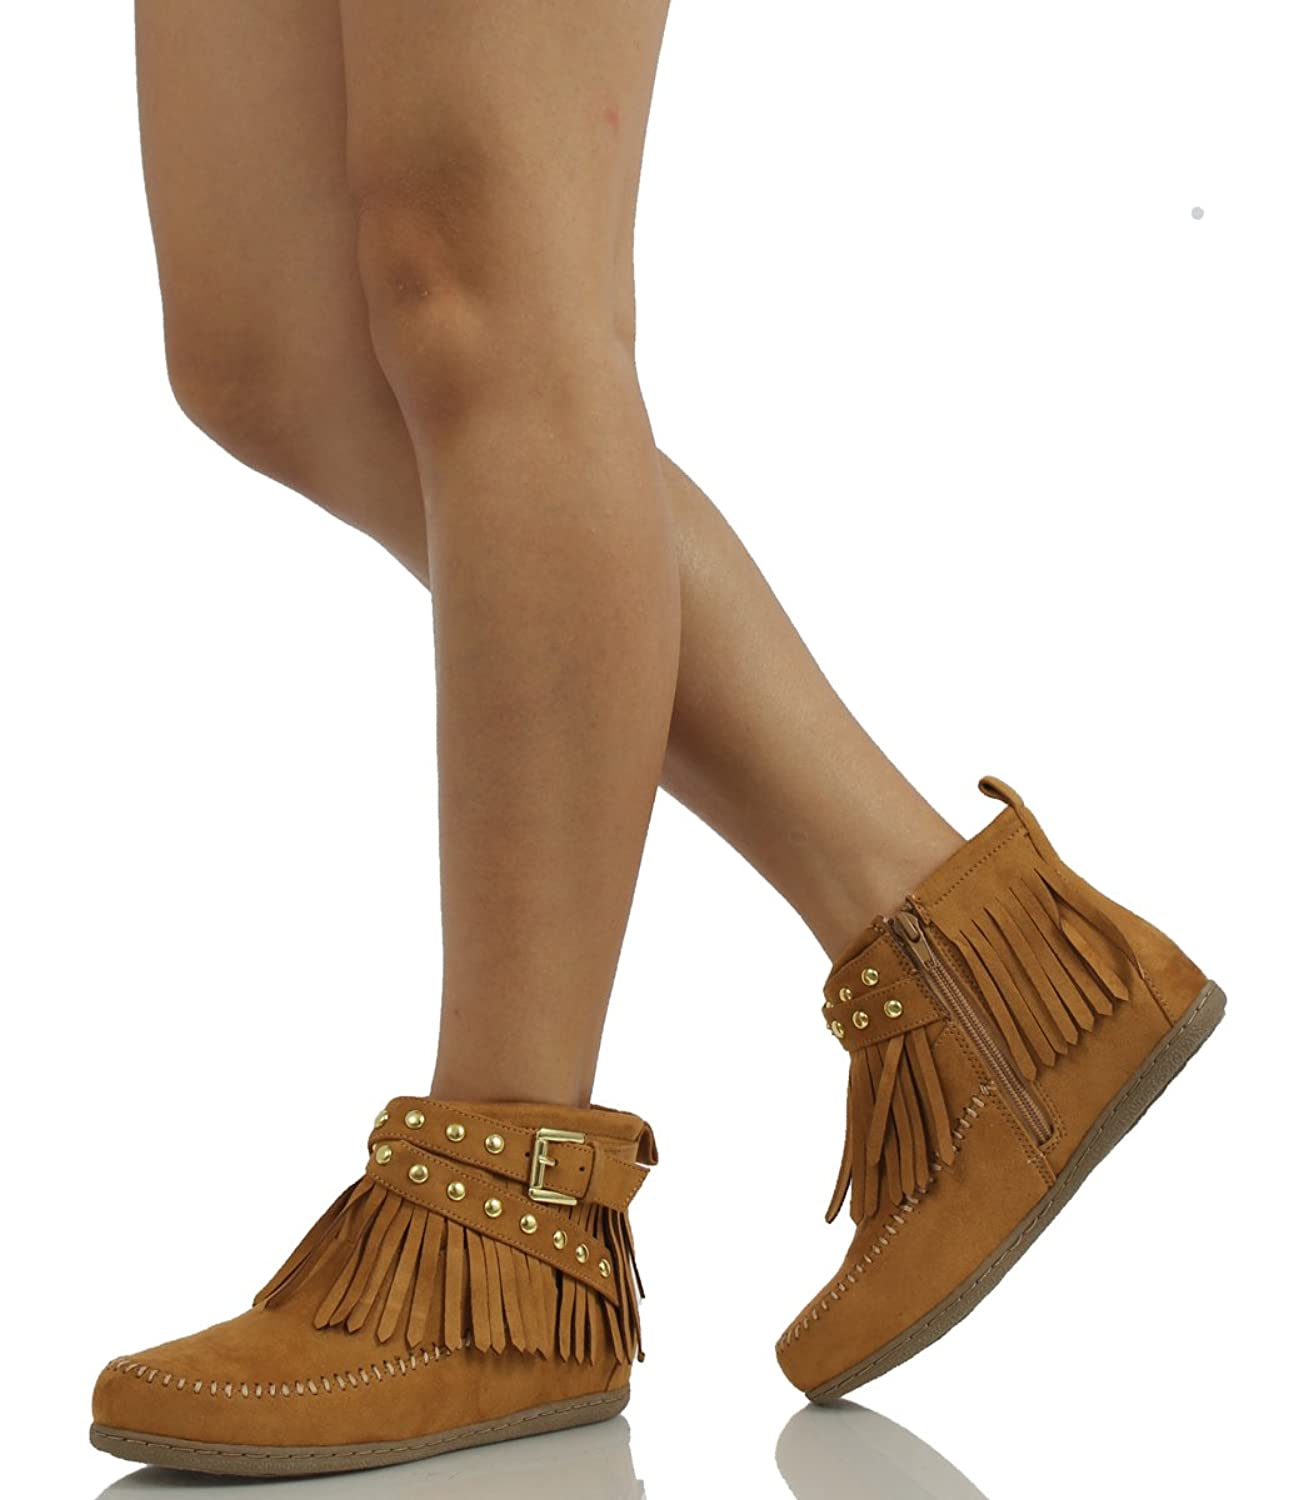 Women's Round Toe Faux Suede Stacked Heel - Sling Back Western Ankle Bootie